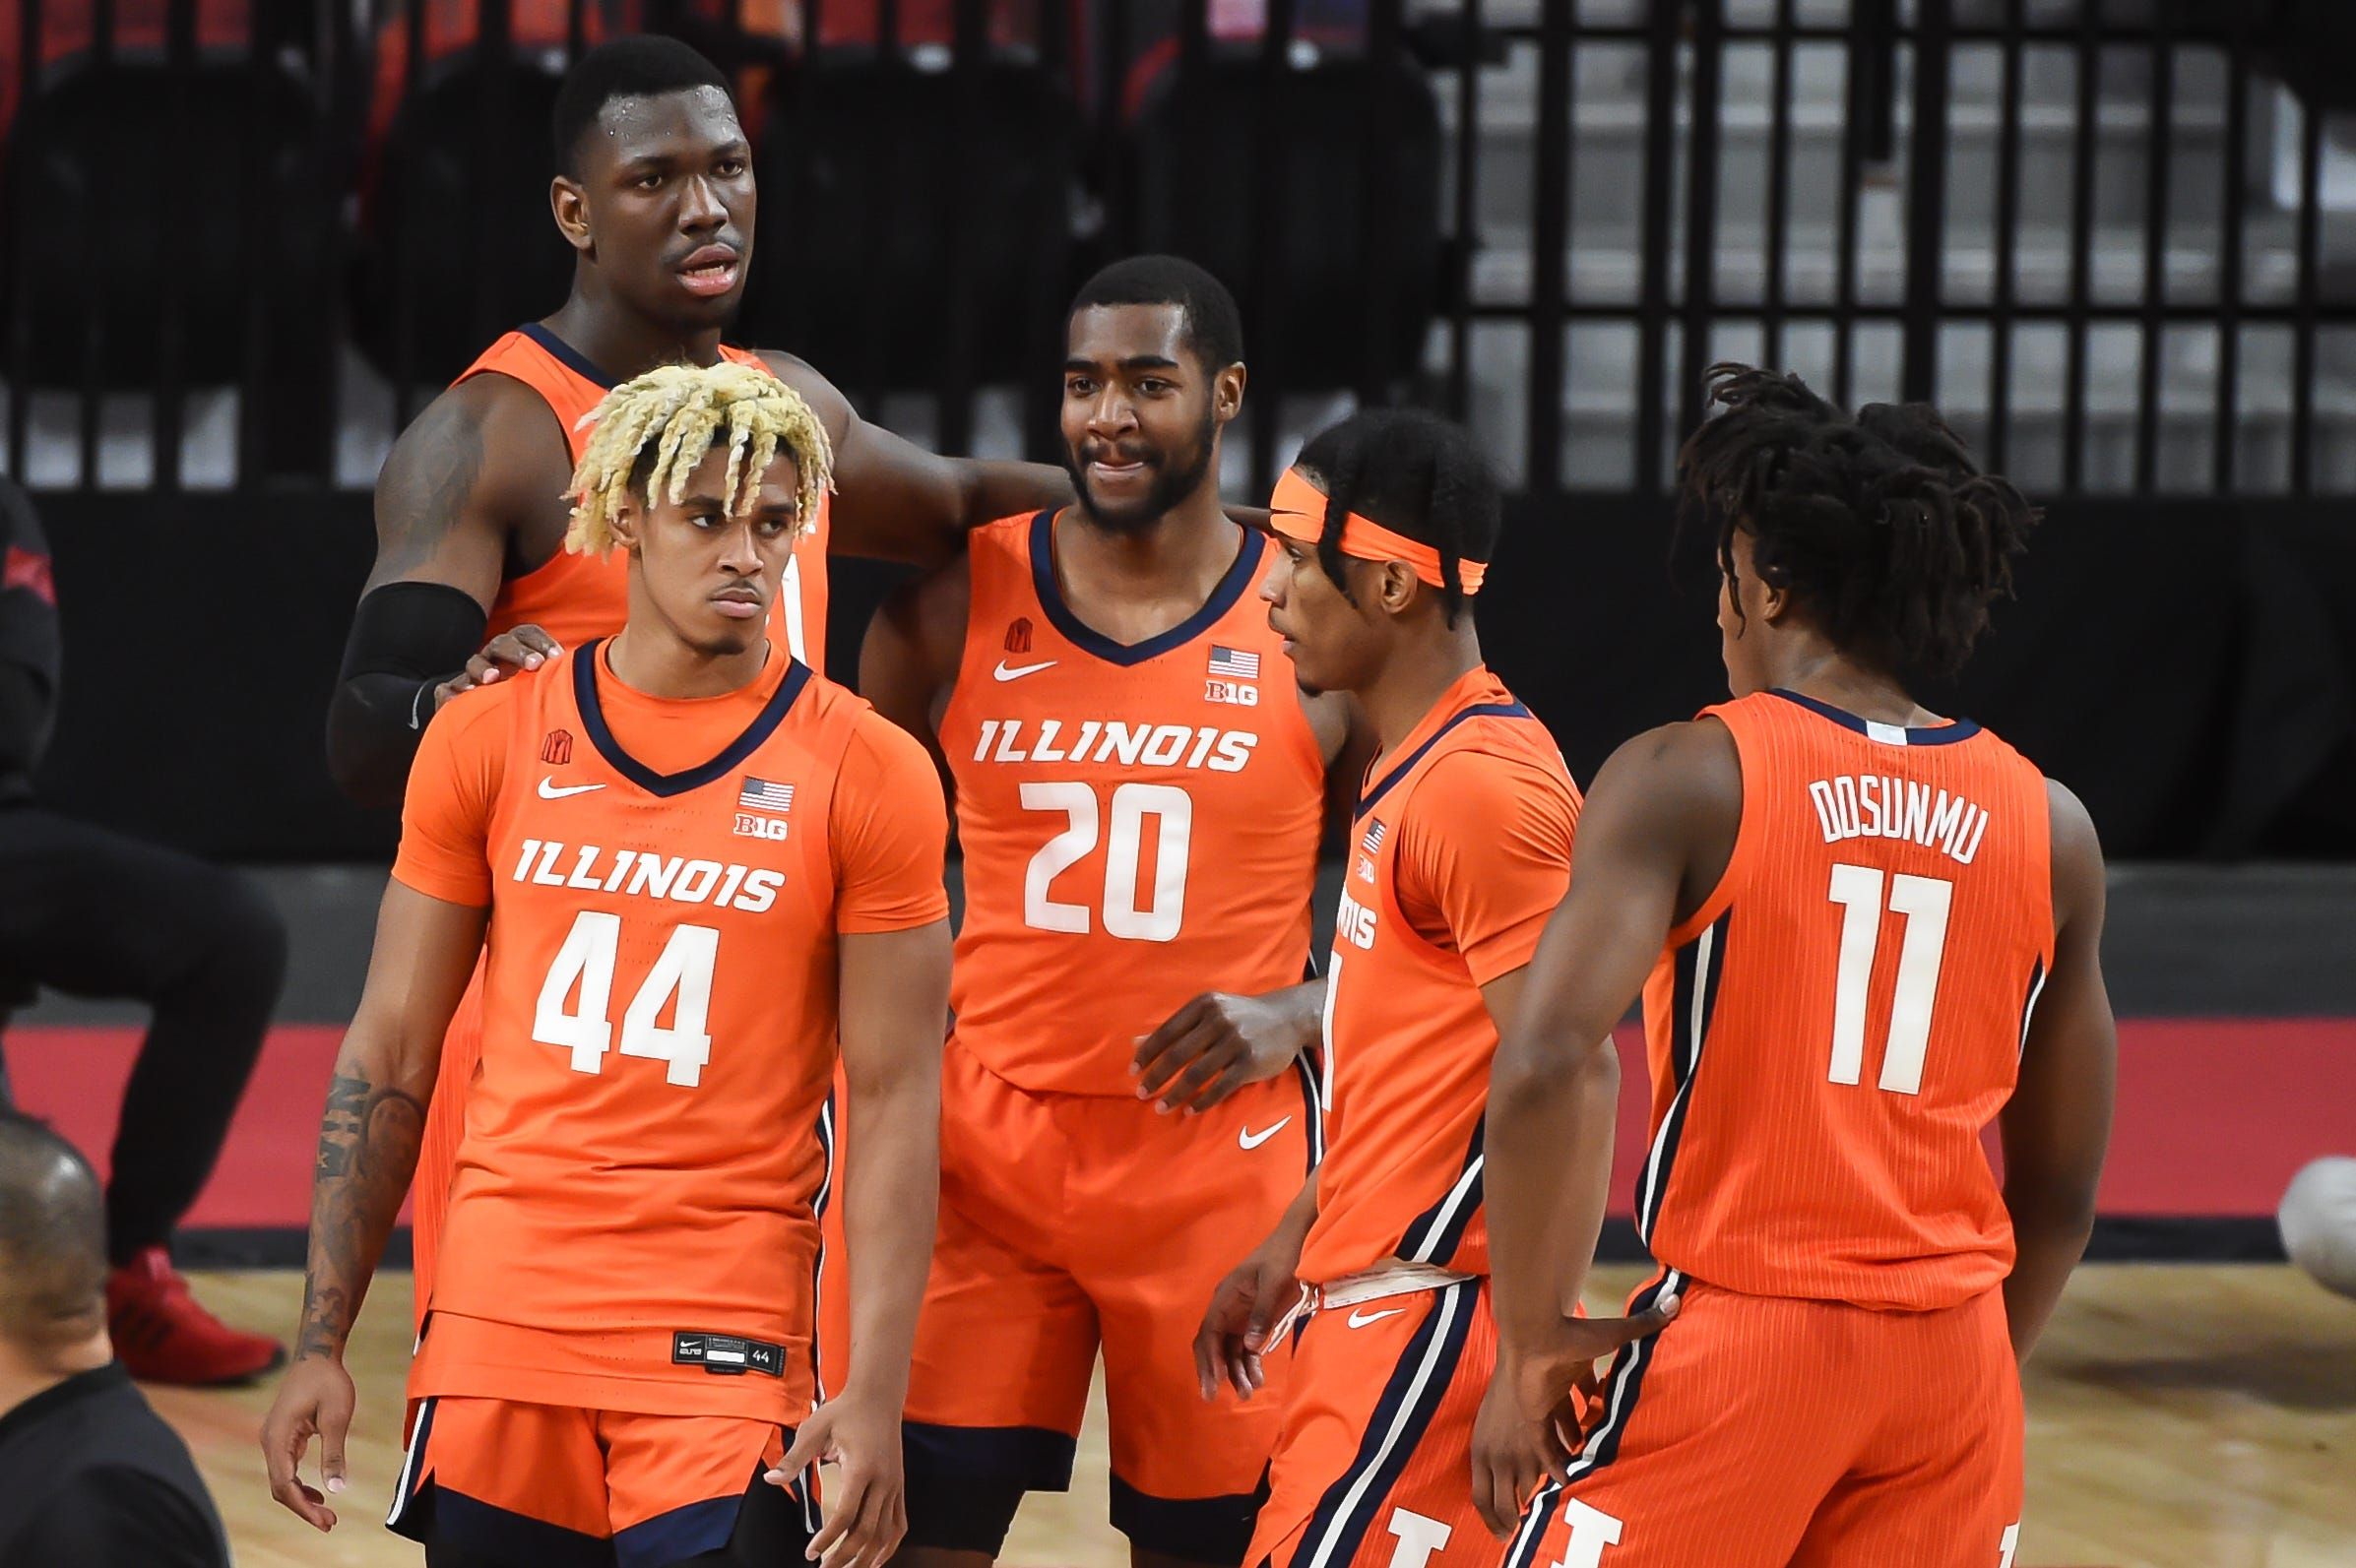 NCAA Tournament bracketology: Illinois surges in as new No. 1 seed, replacing Ohio State